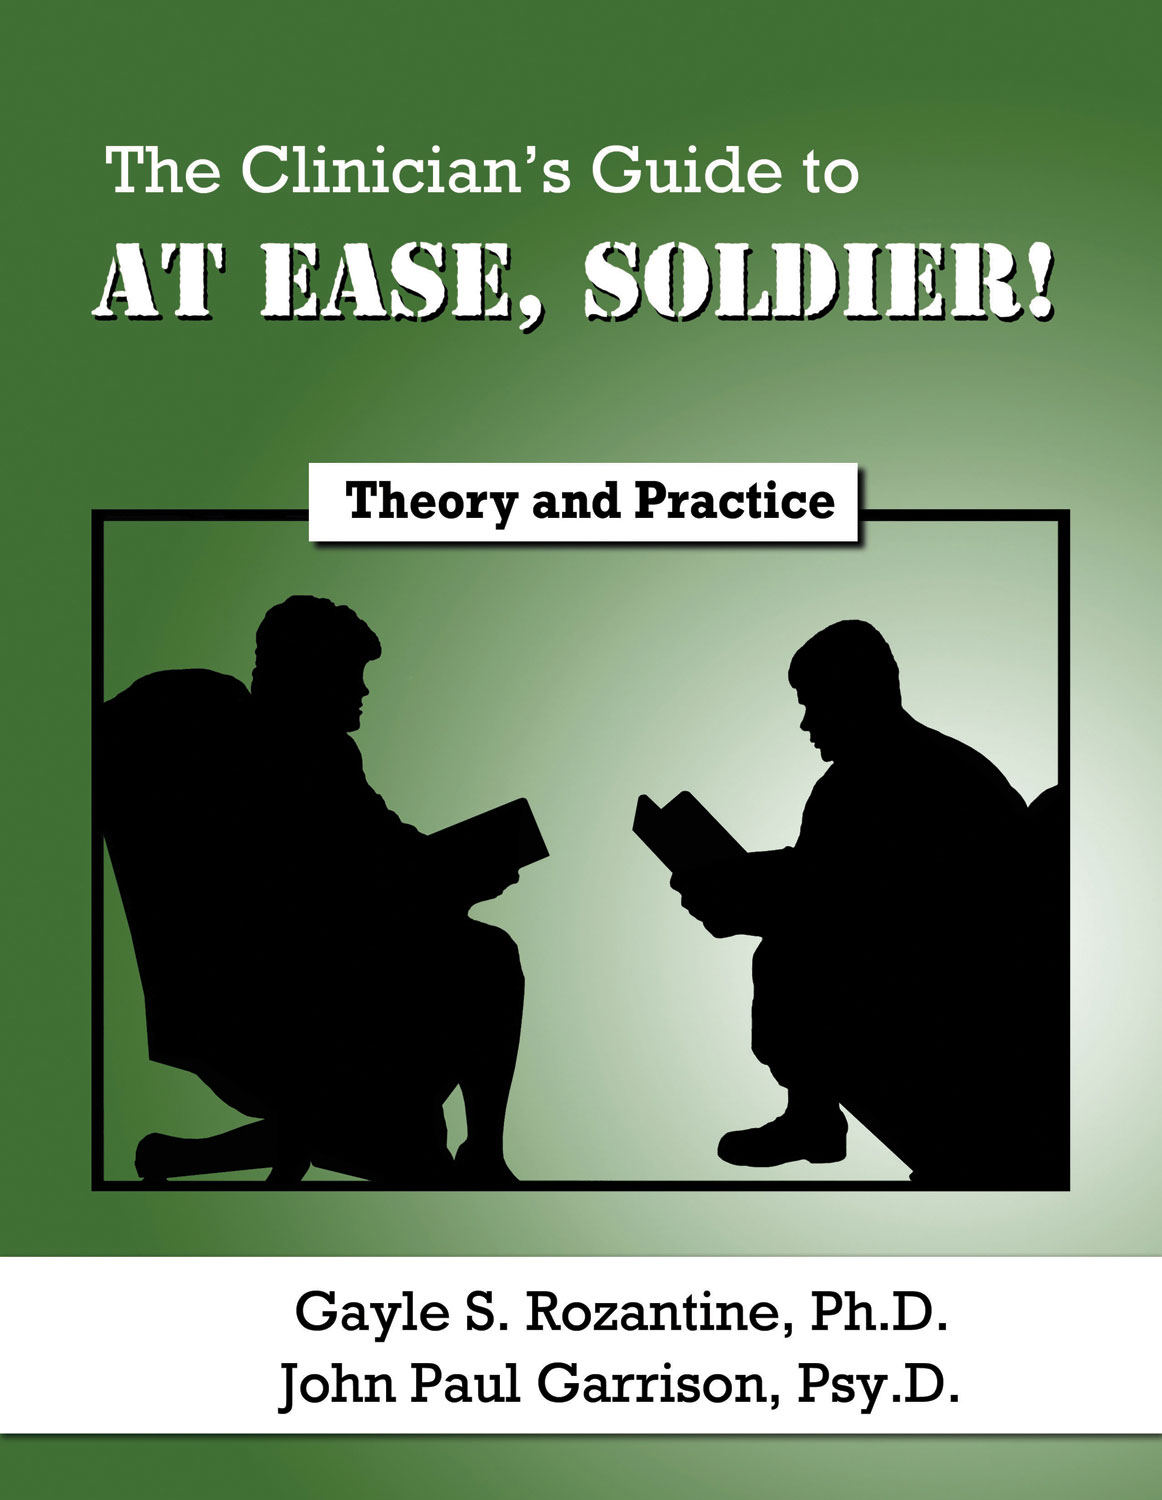 The Clinician's Guide to At Ease, Soldier!